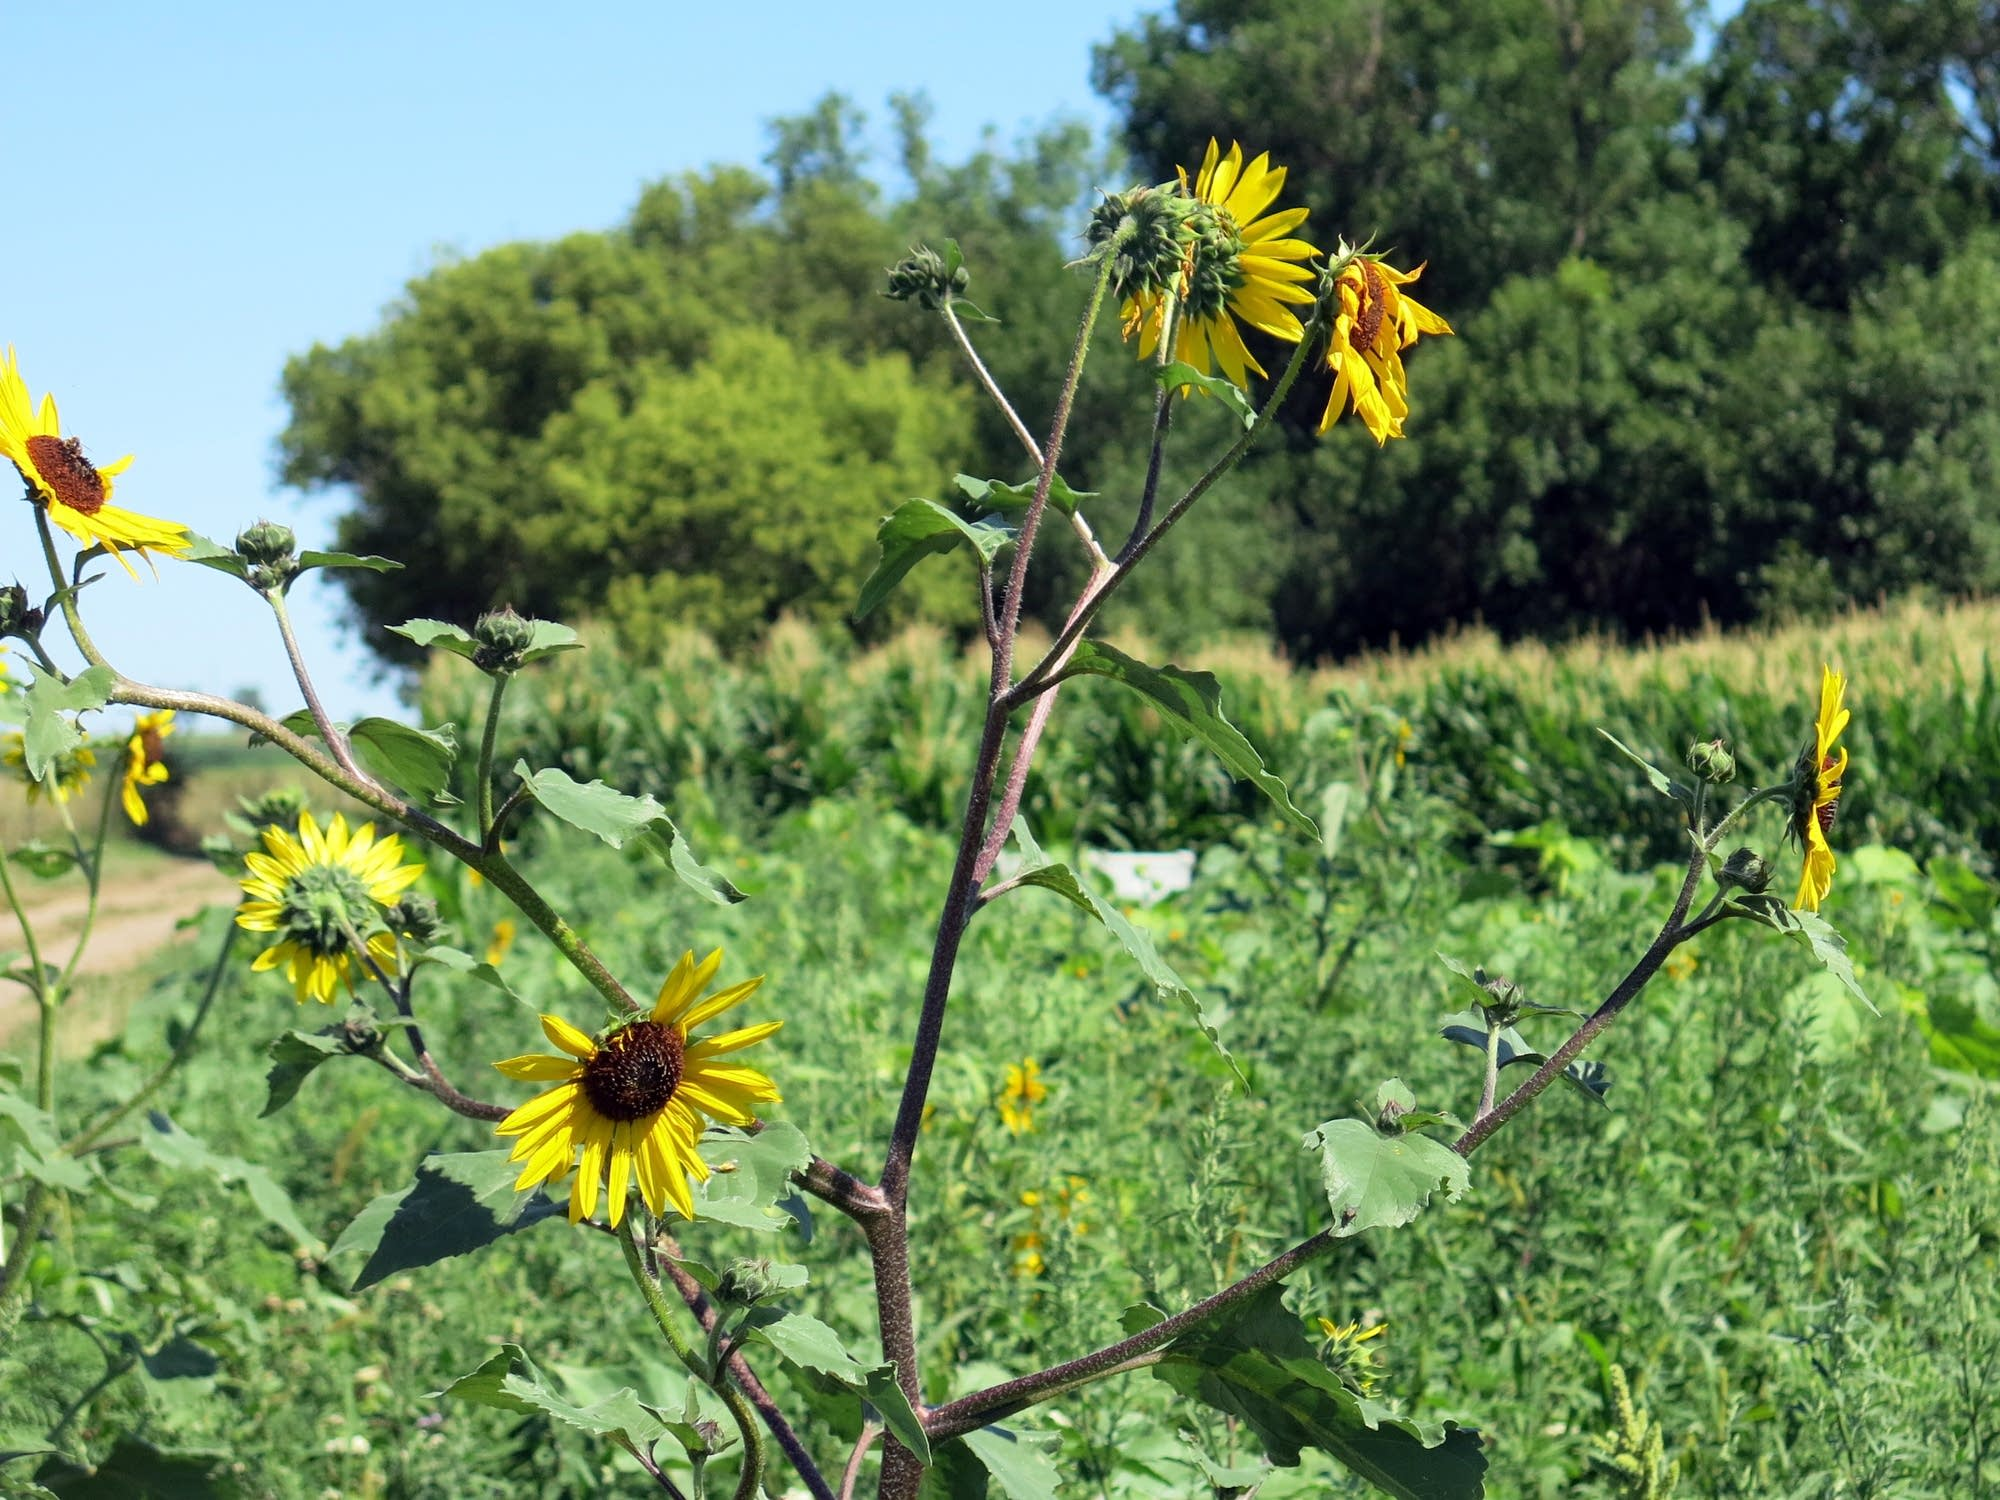 Incentives encourage planting wildflower plots